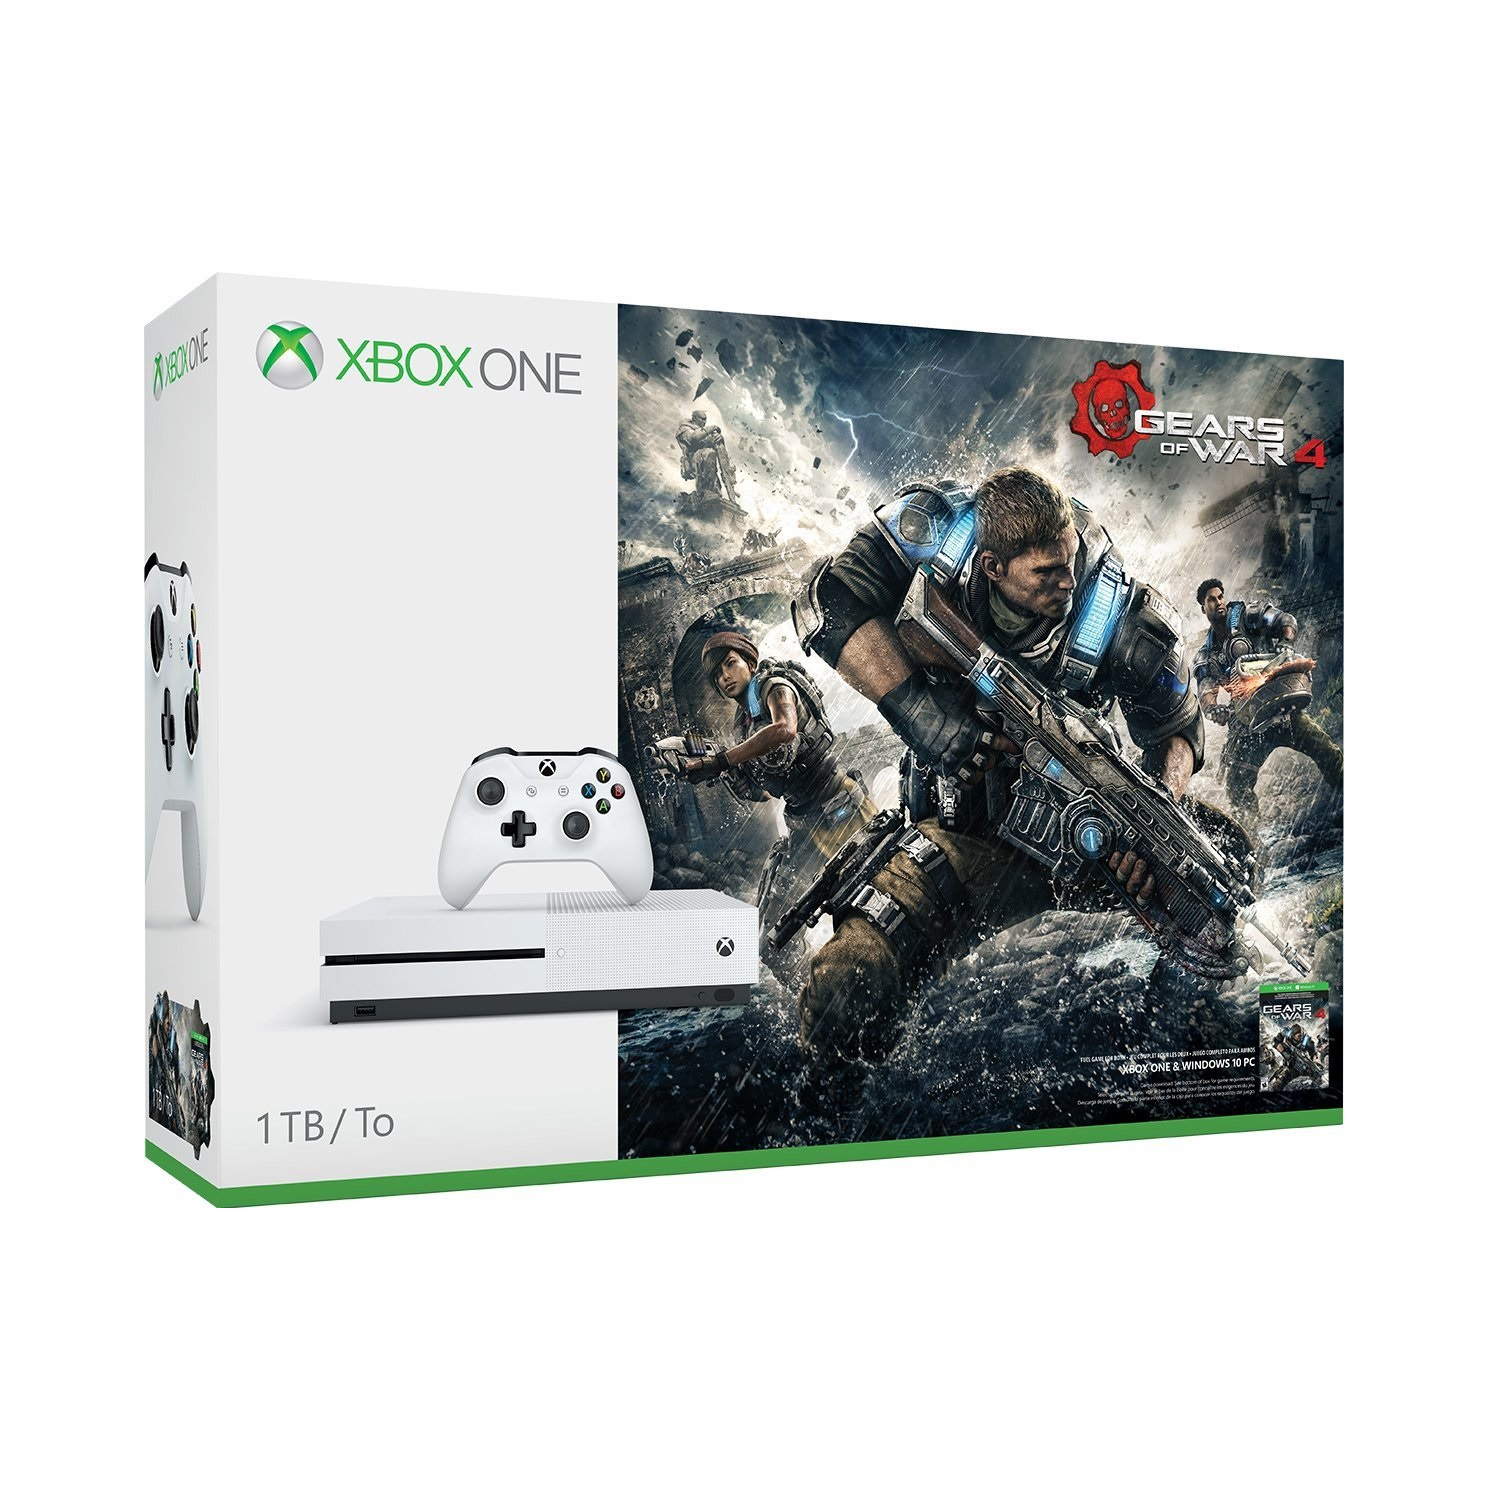 Xbox One S Gears of War 4 1 TB Bundle